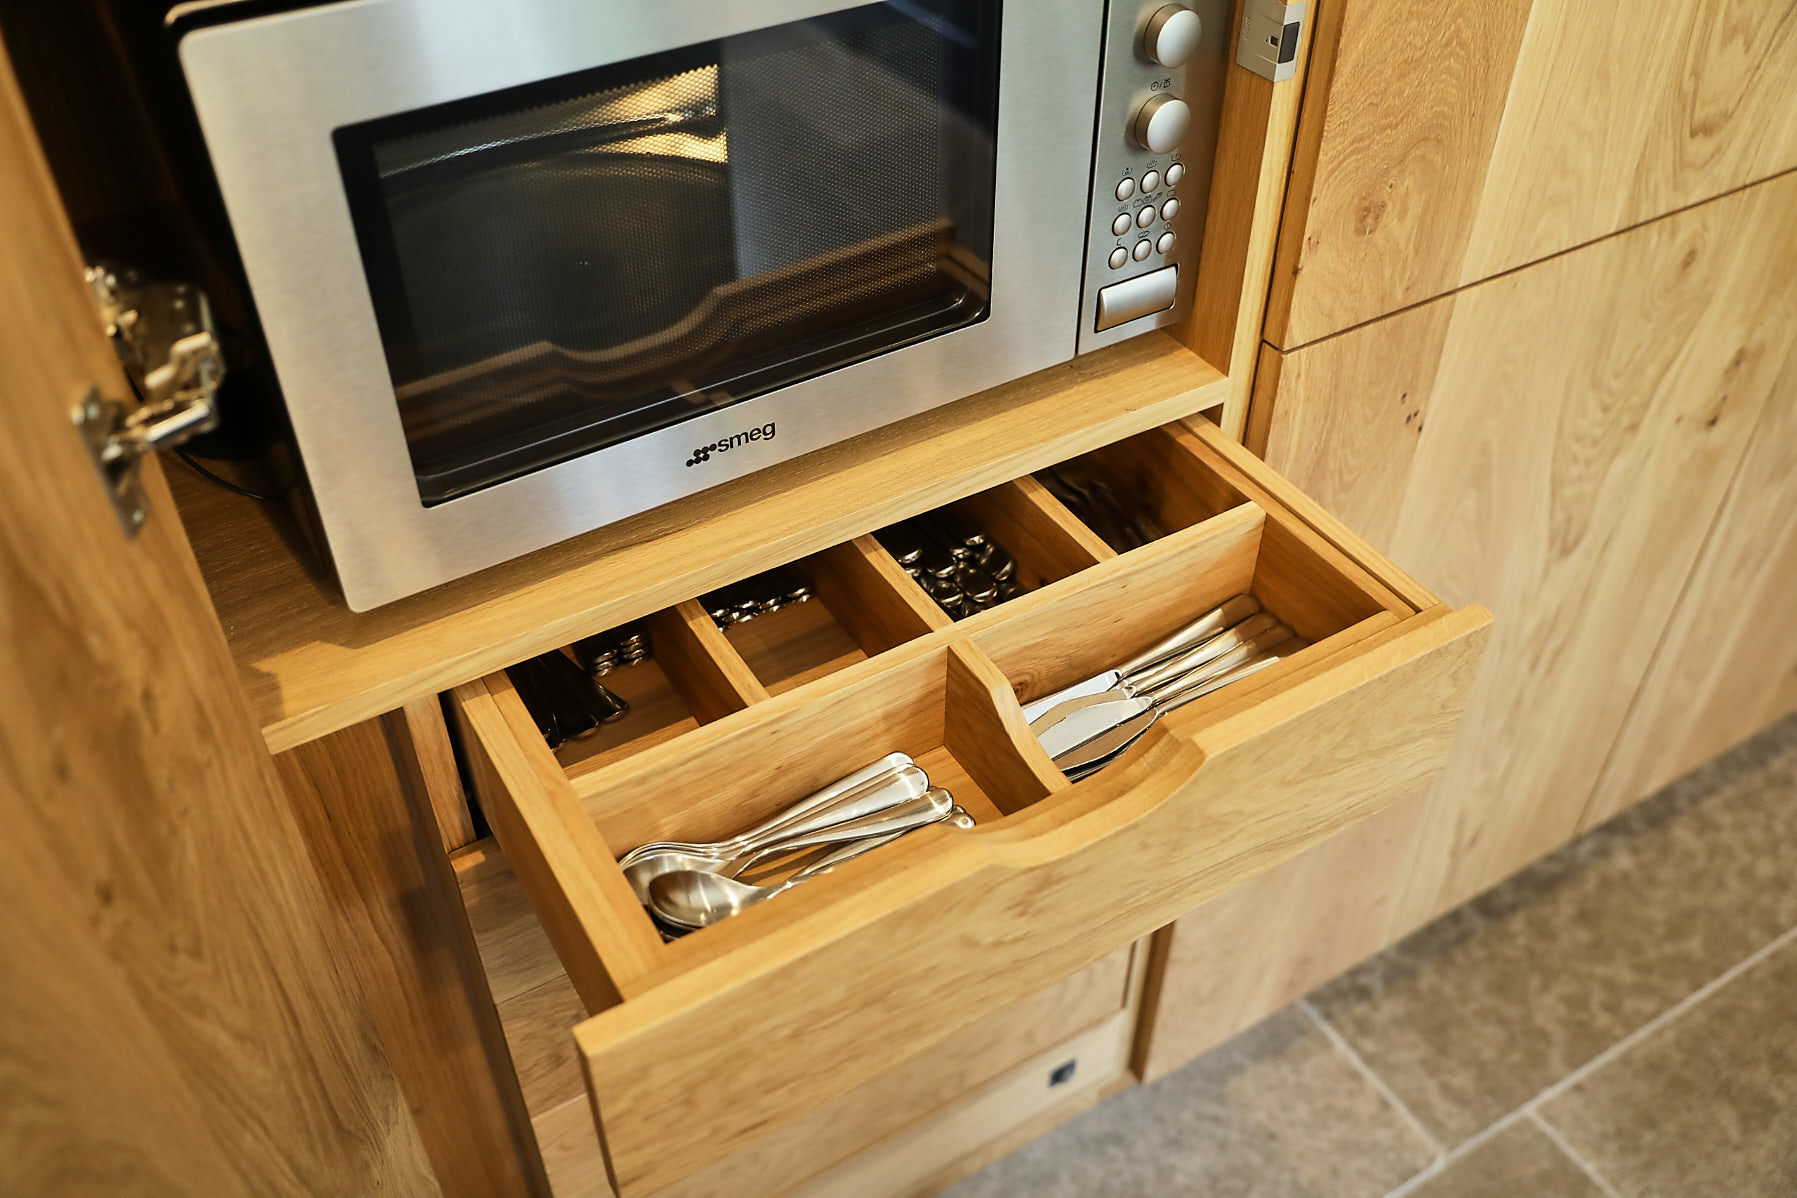 Solid oak cutlery insert in tall kitchen cabinets separates knives and spoons